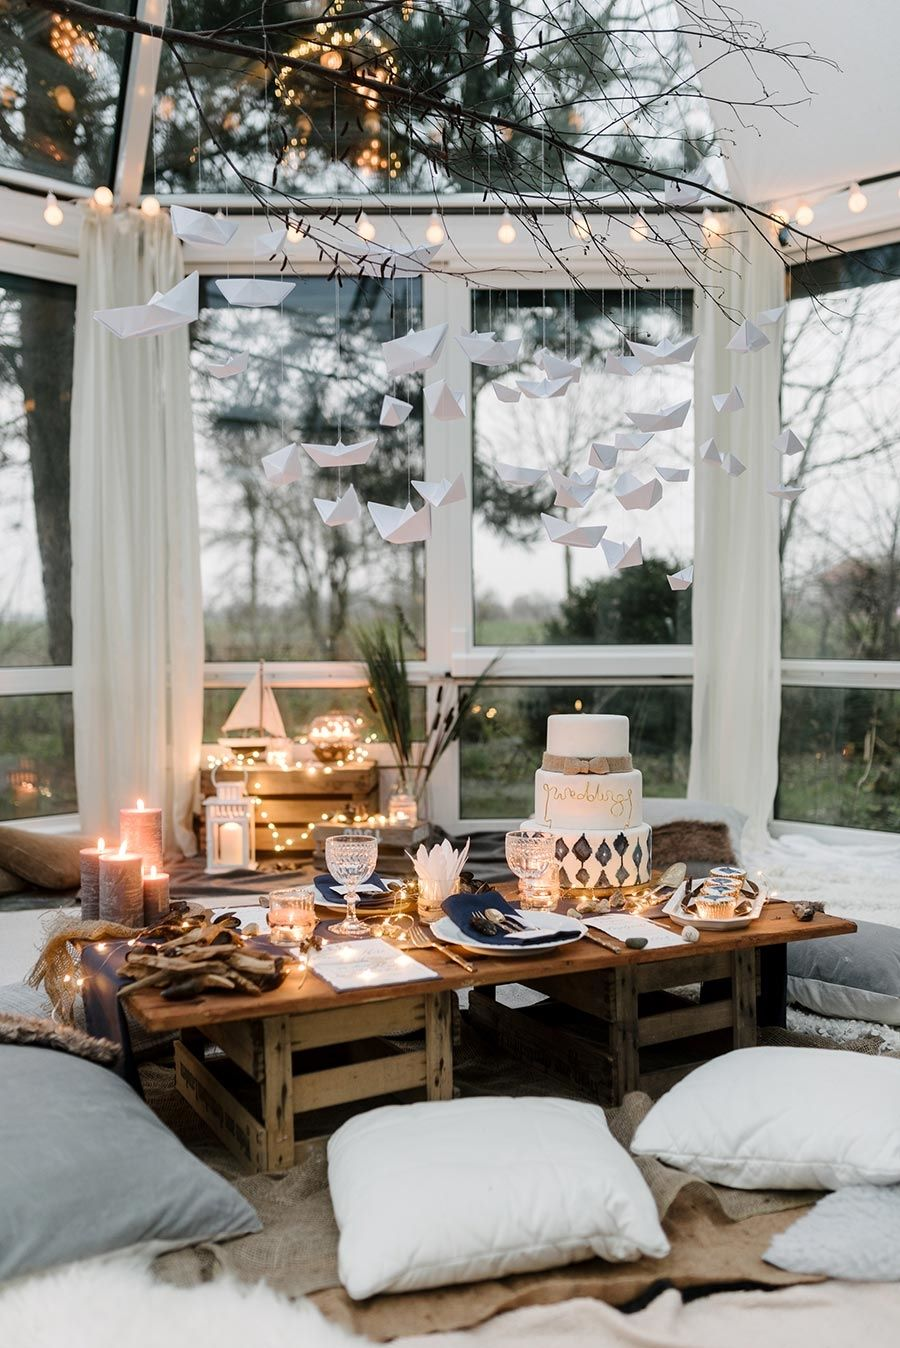 Jan 30 Life Styled The Hygge Home Hygge Interiors